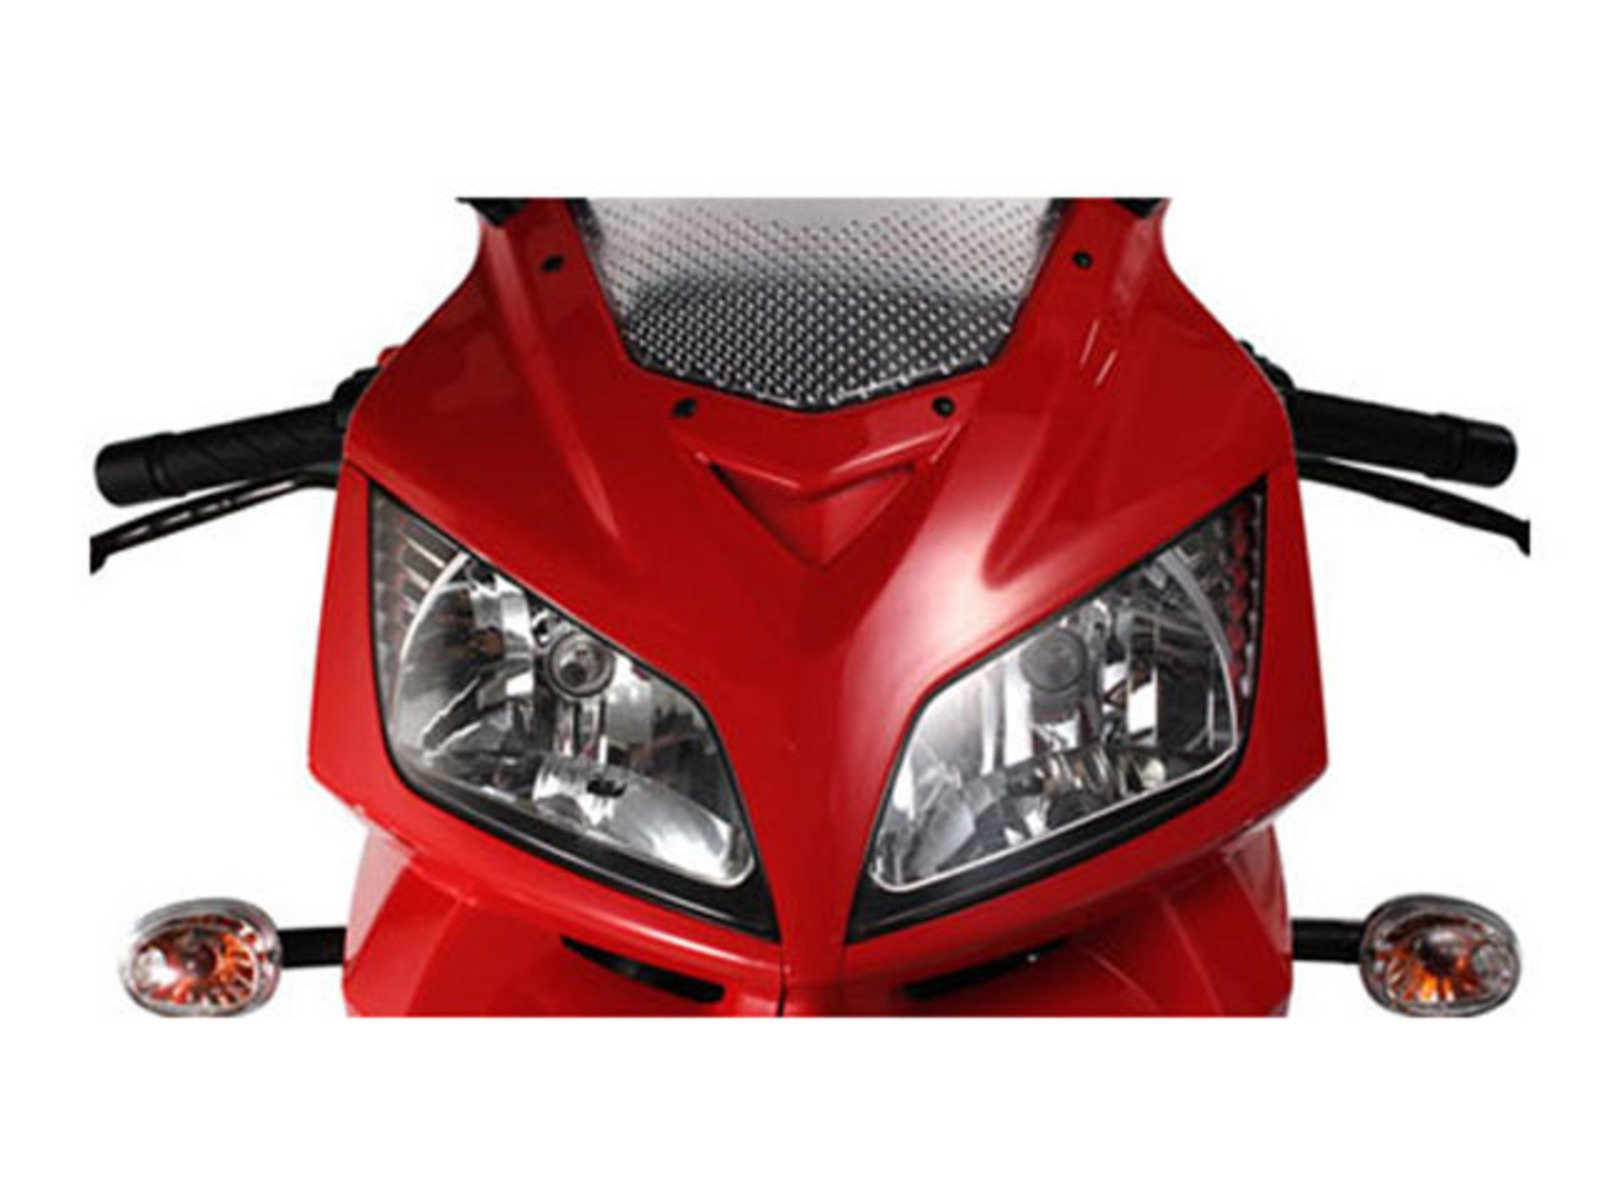 2013 Kymco Quannon 125 Pictures, Photos, Wallpapers.   Top